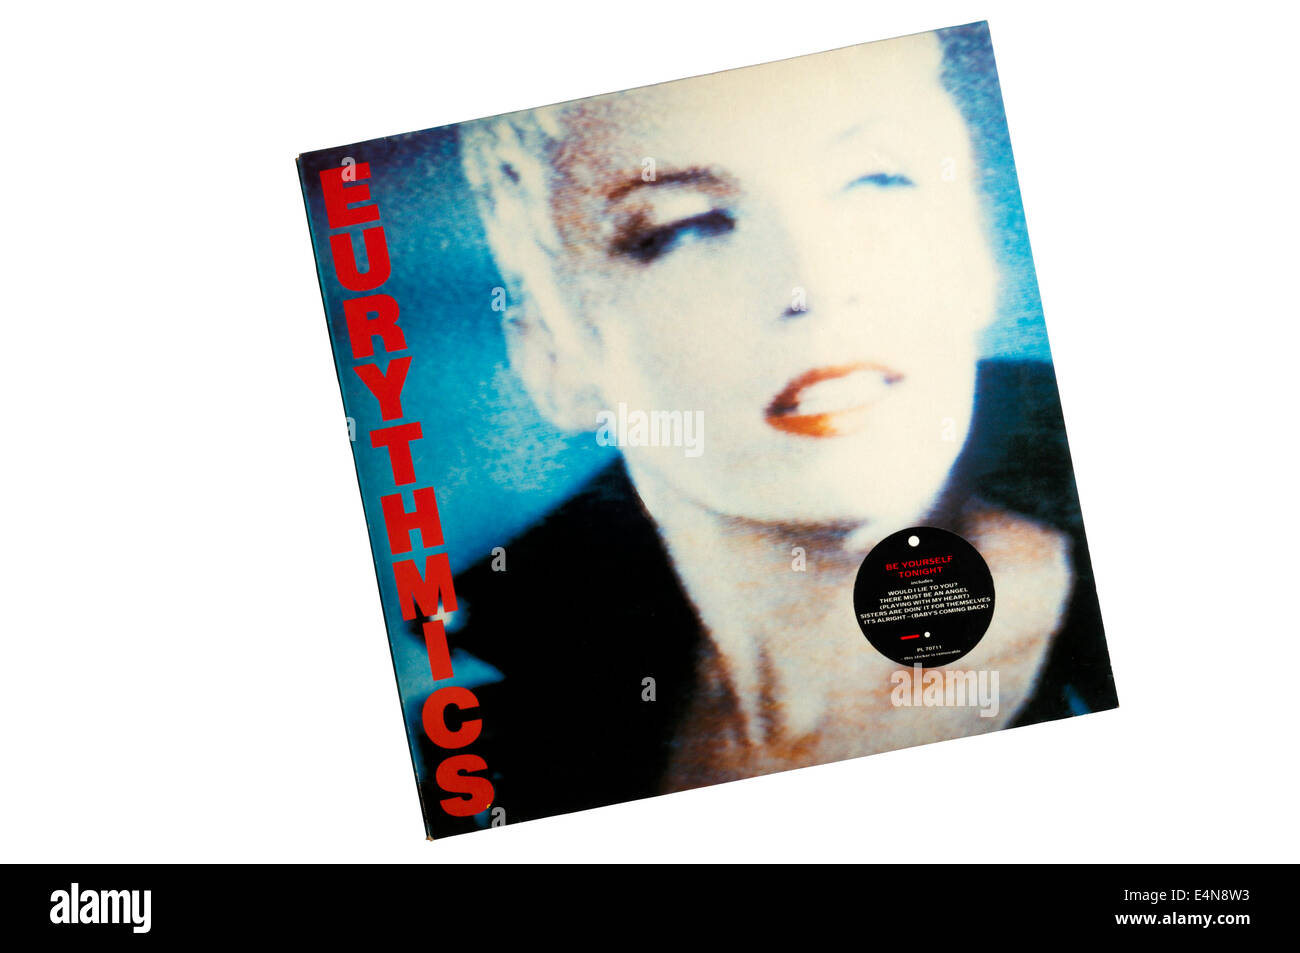 Be Yourself Tonight was the fourth studio album by the British pop duo Eurythmics, released in 1985. - Stock Image